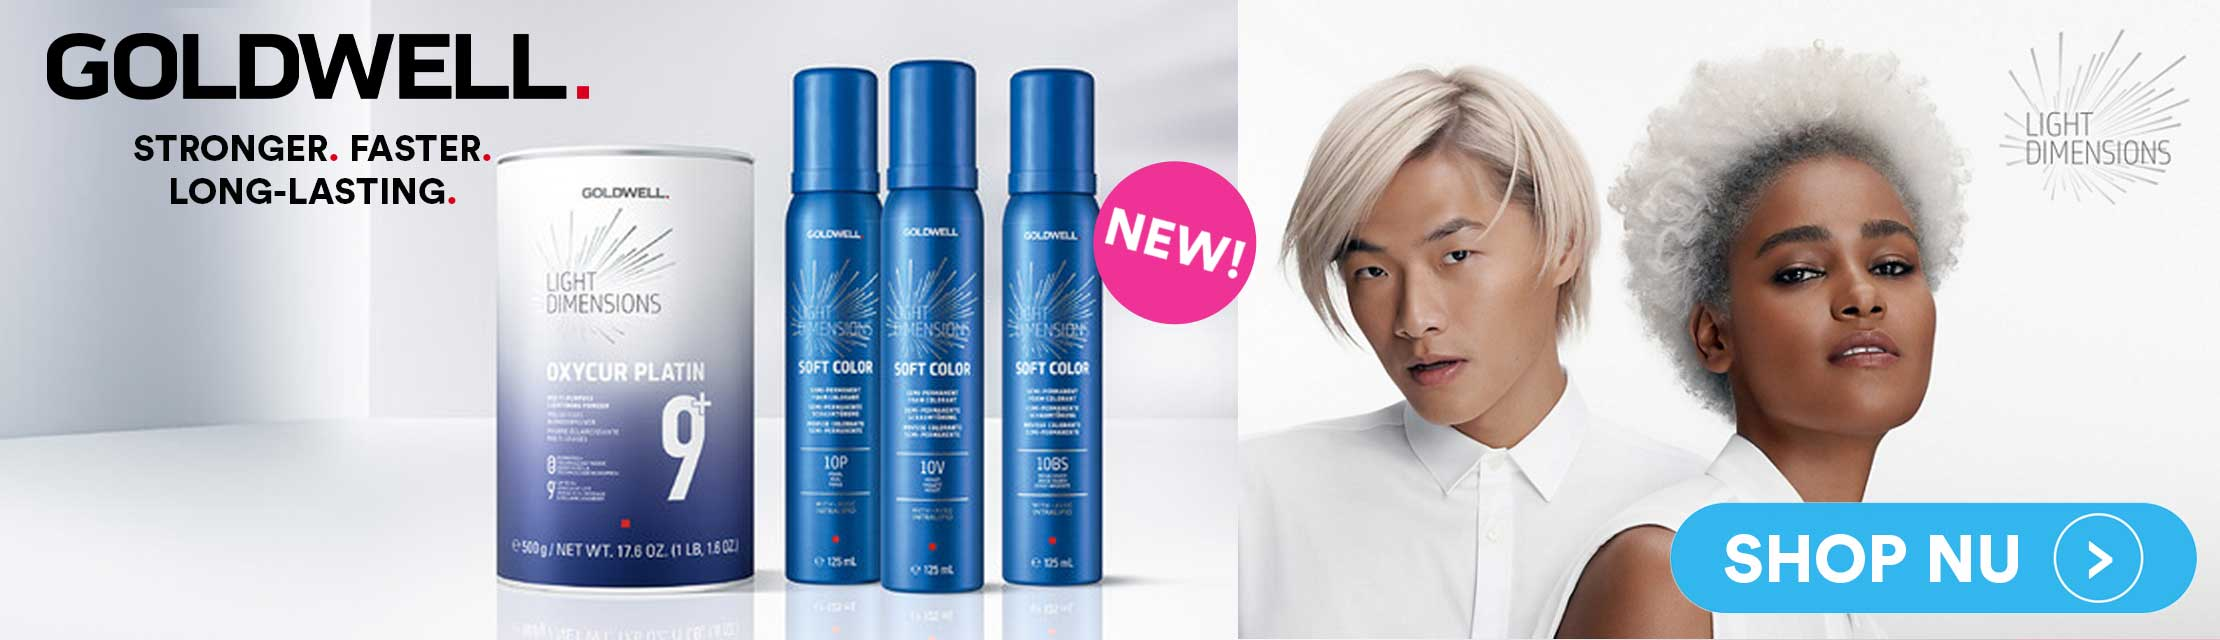 Goldwell Light Dimensions New